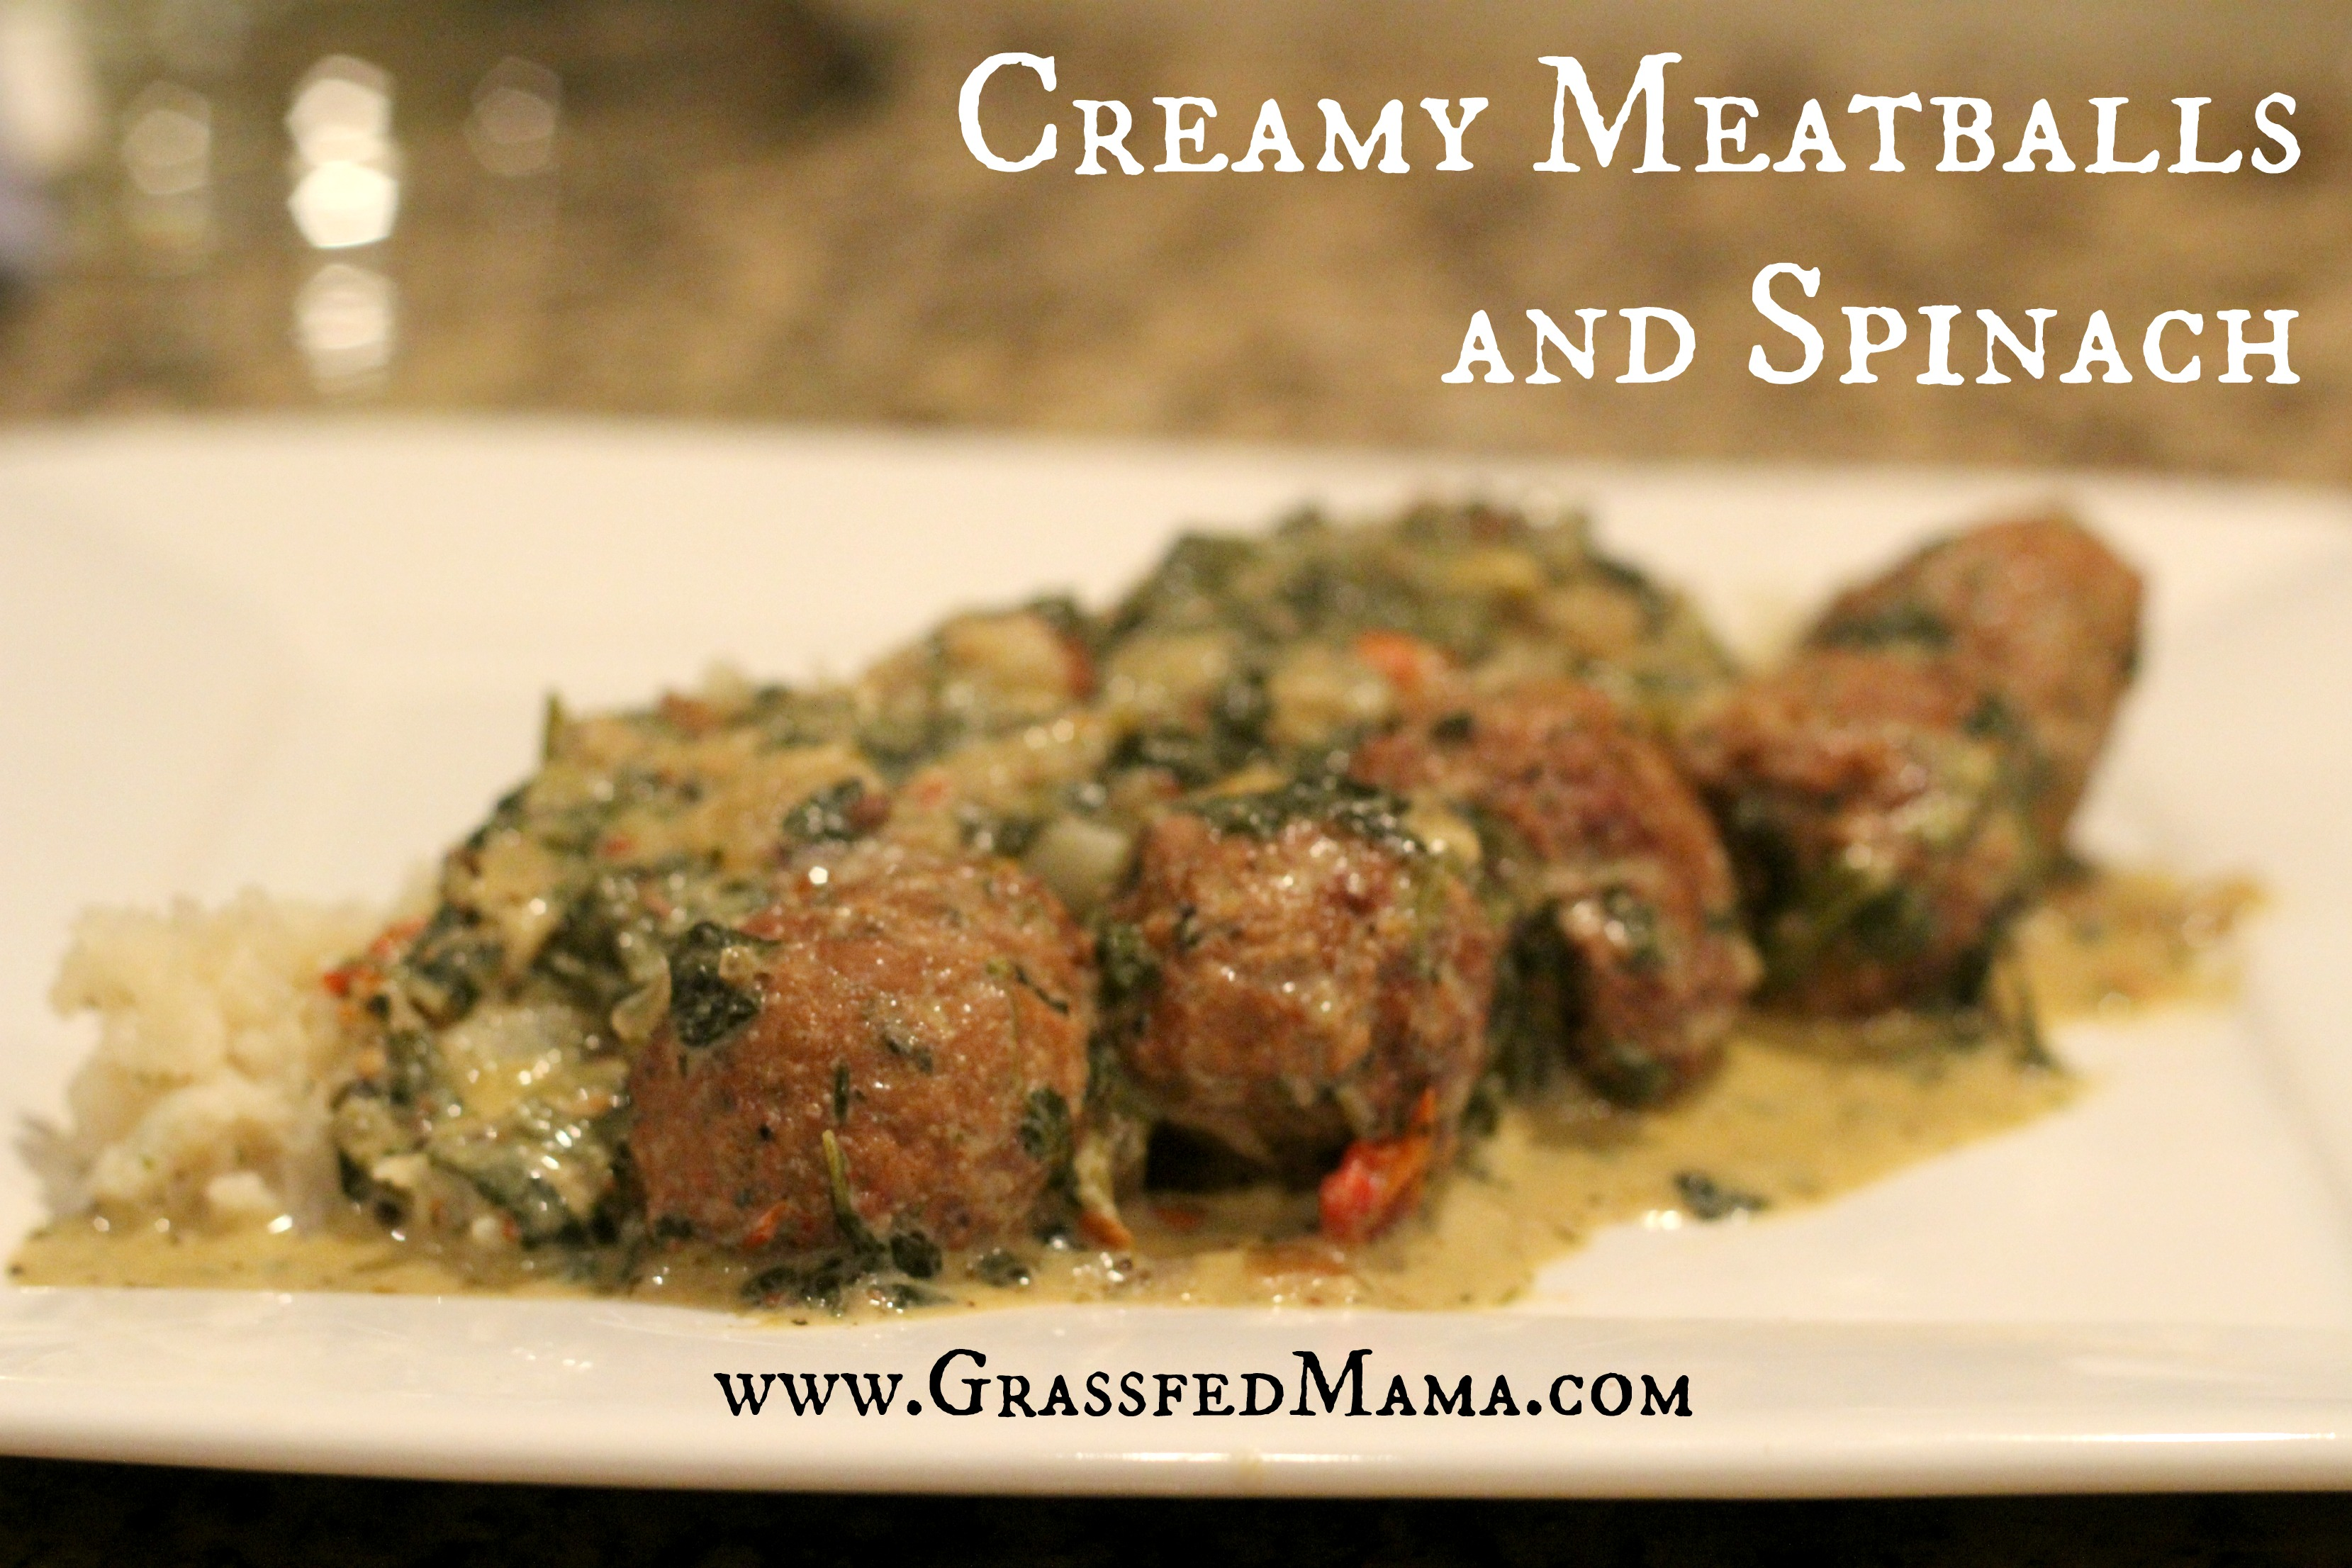 Slow Cooker Italian Meatballs and Spinach - Grassfed Mama